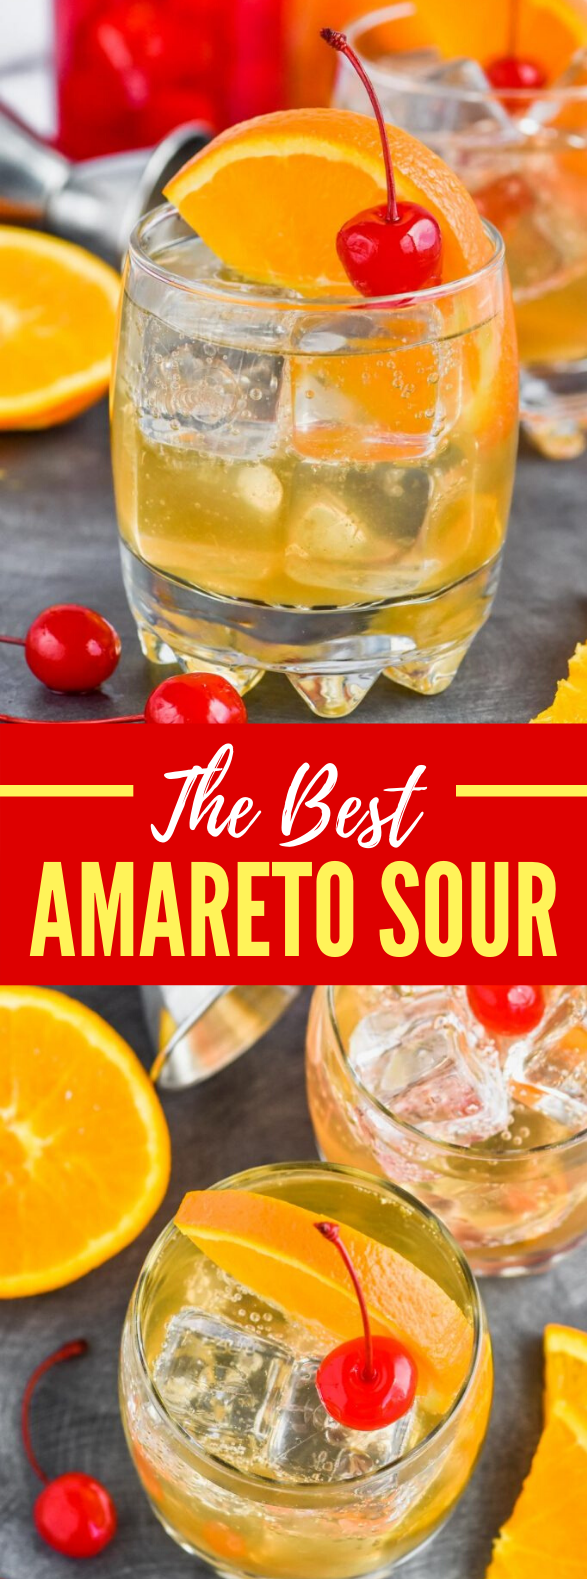 AMARETTO SOUR RECIPE #drinks #cocktails